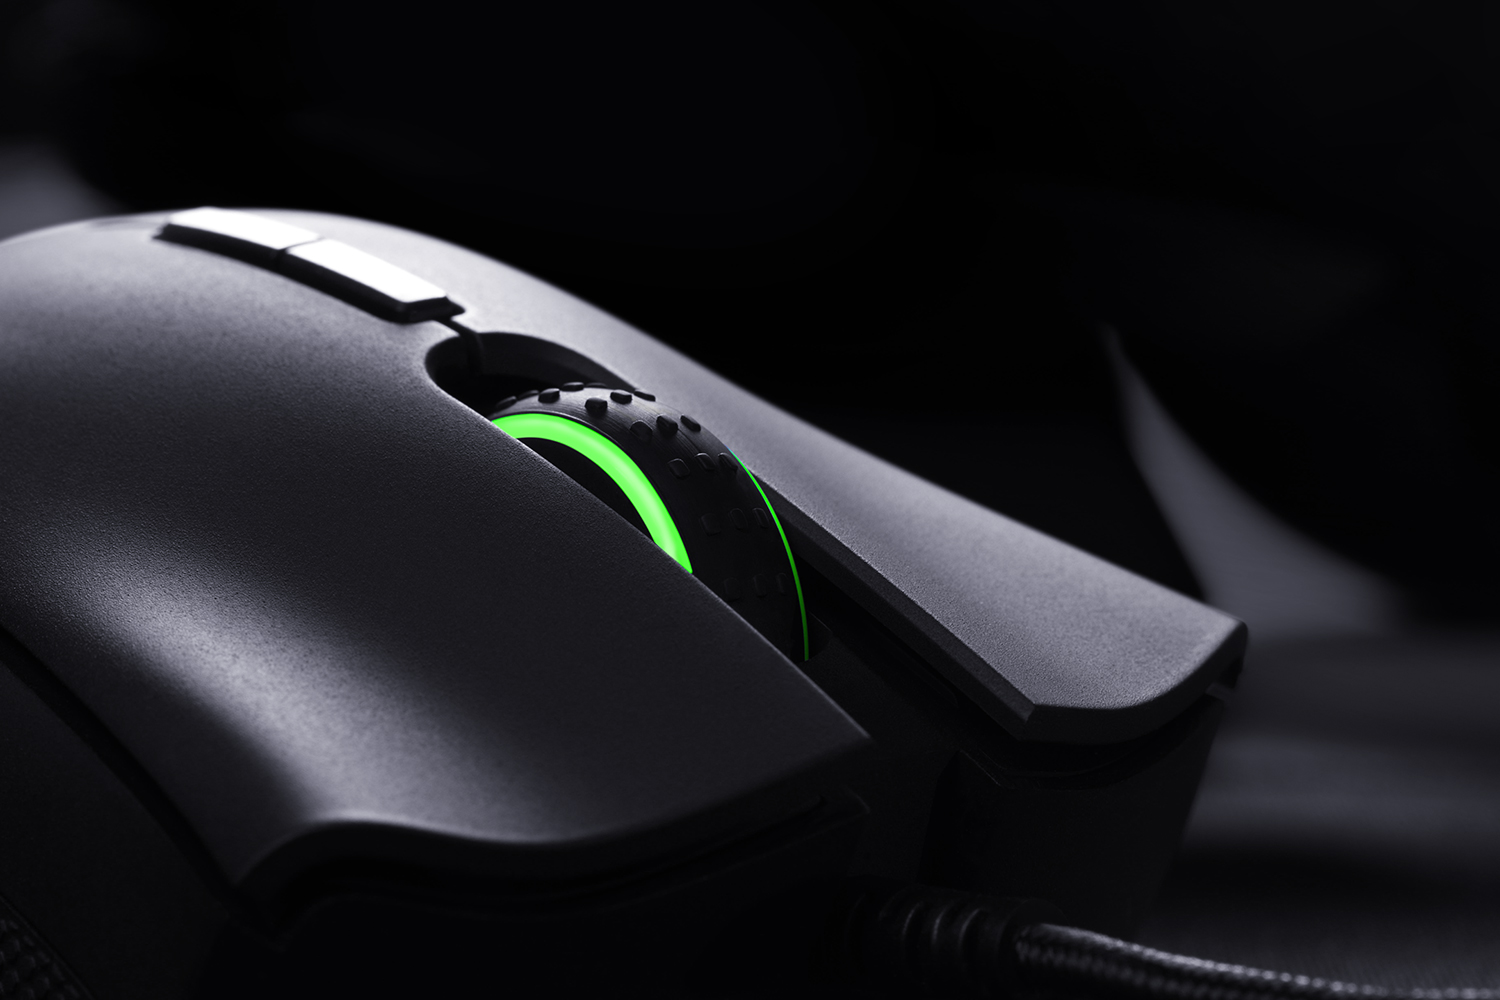 Razer Deathadder Elite The Esports Gaming Mouse